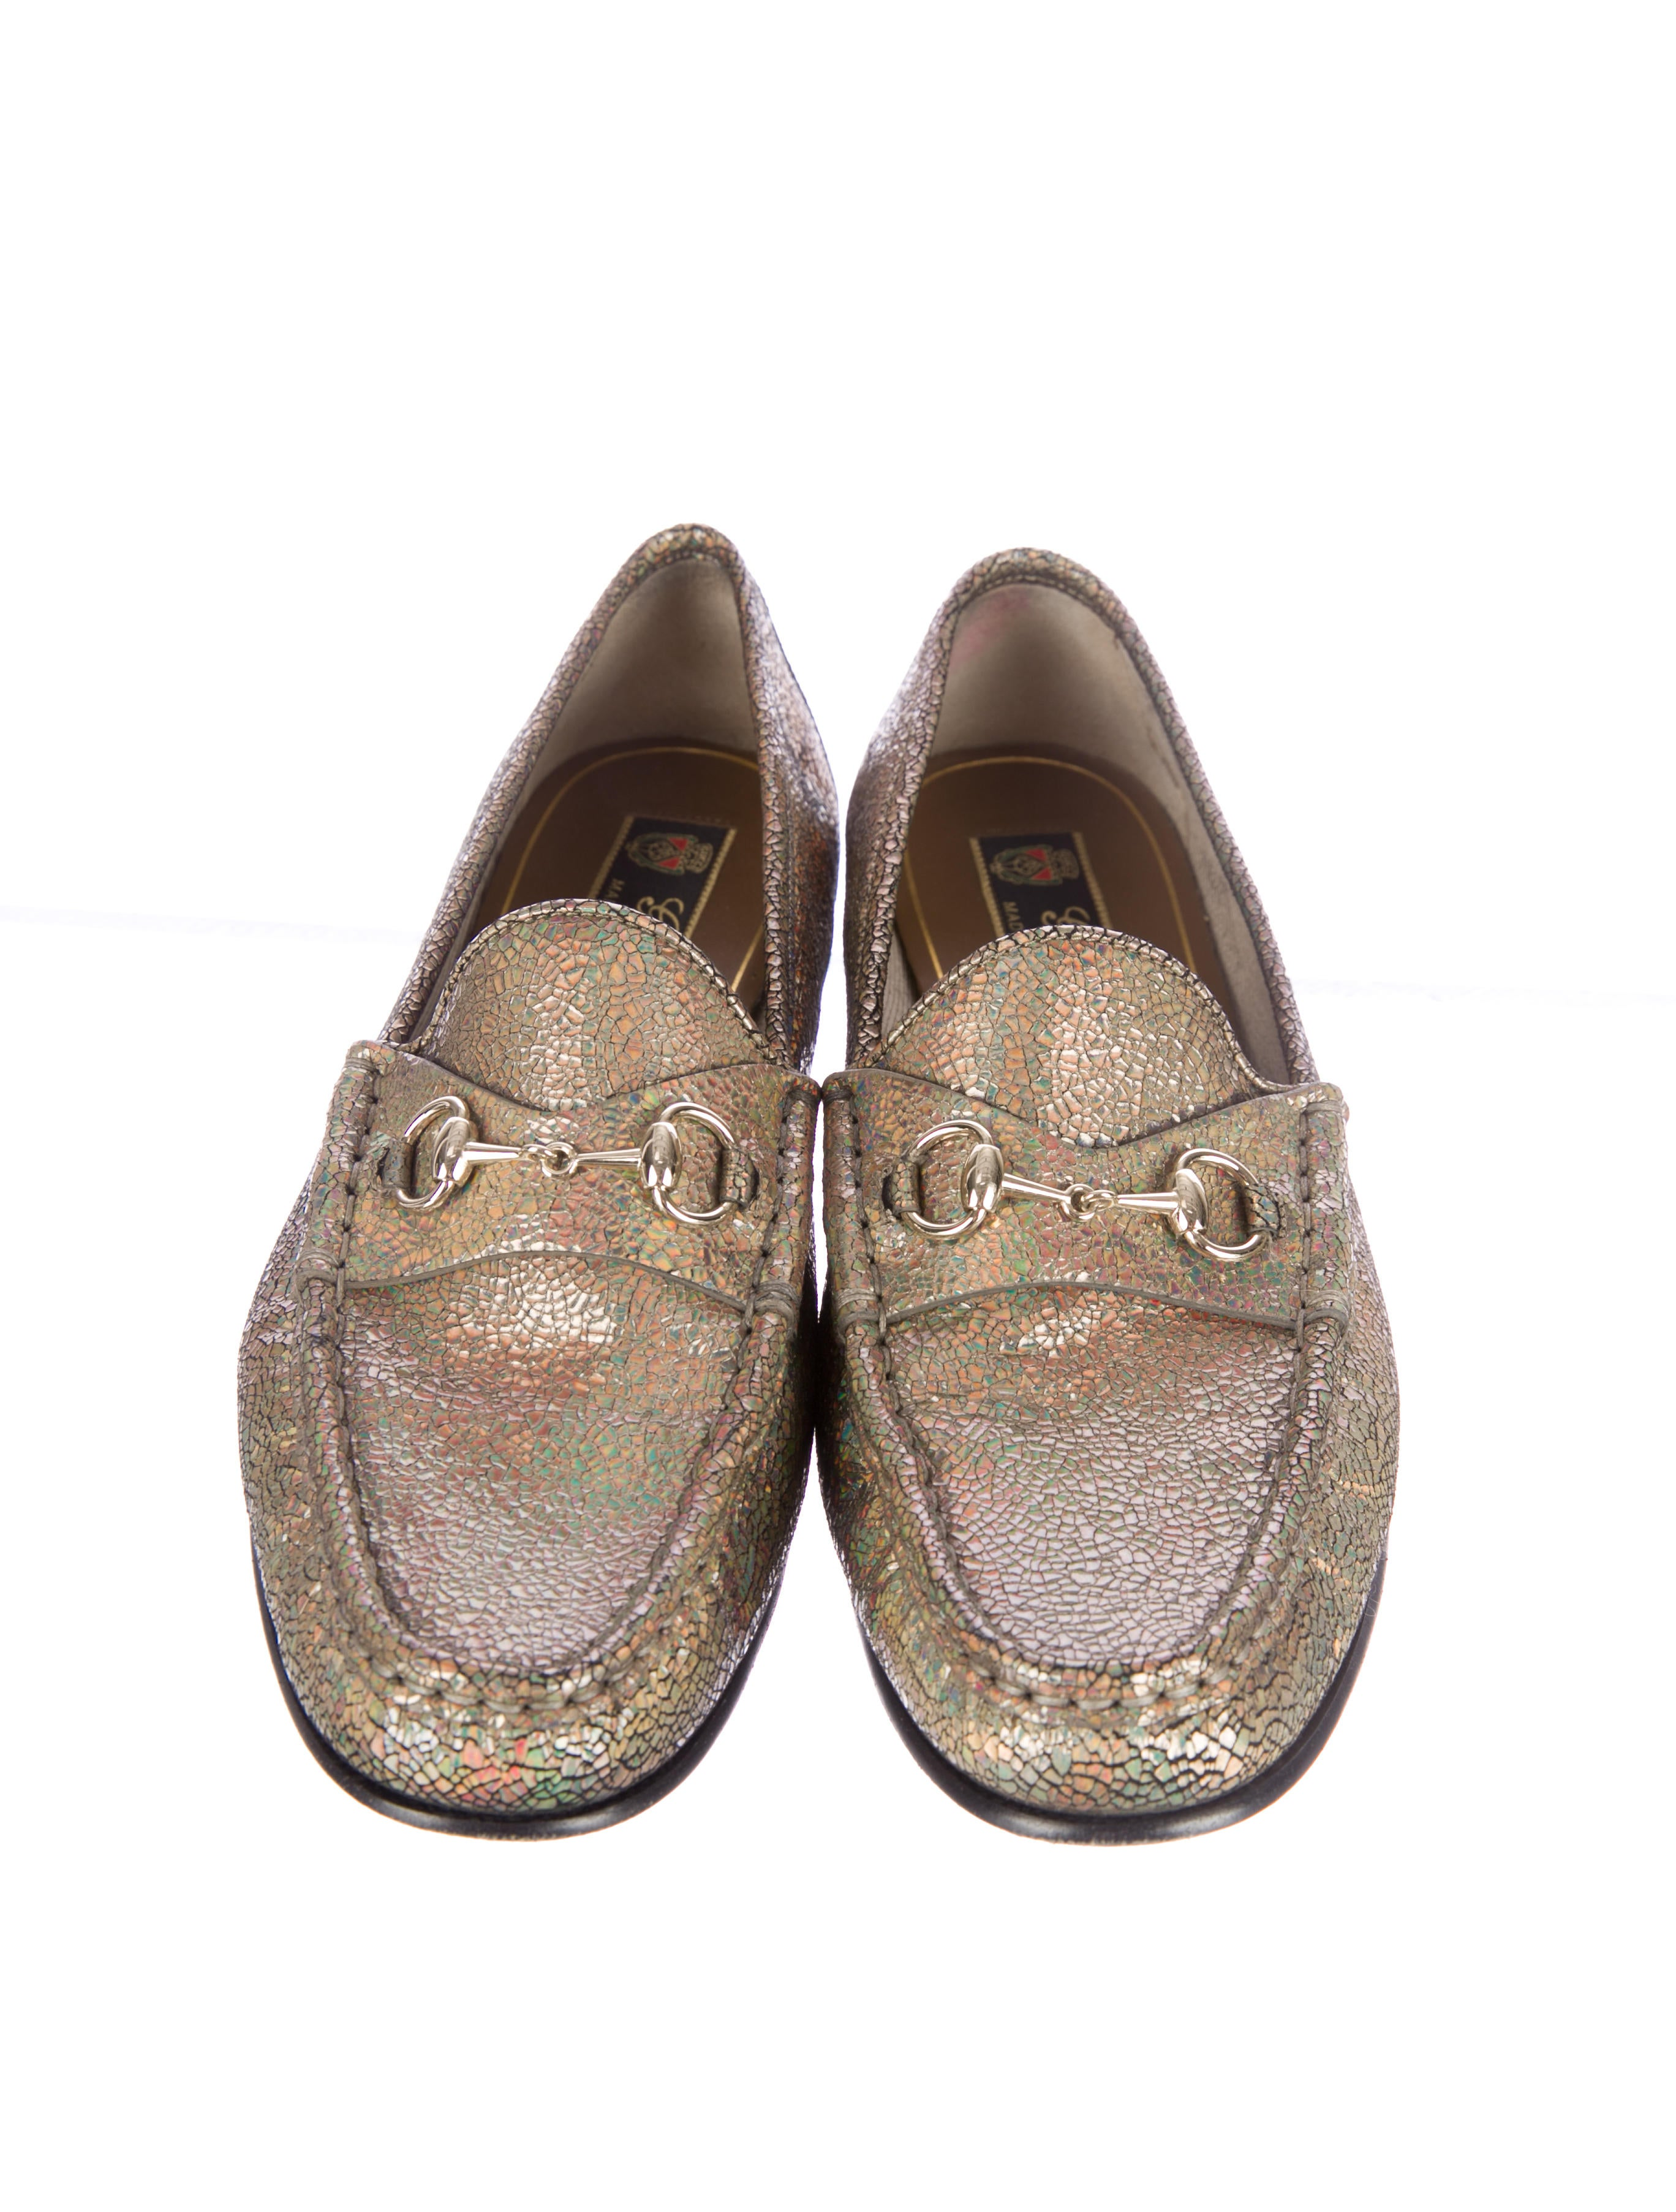 gucci holographic horsebit loafers shoes guc58318